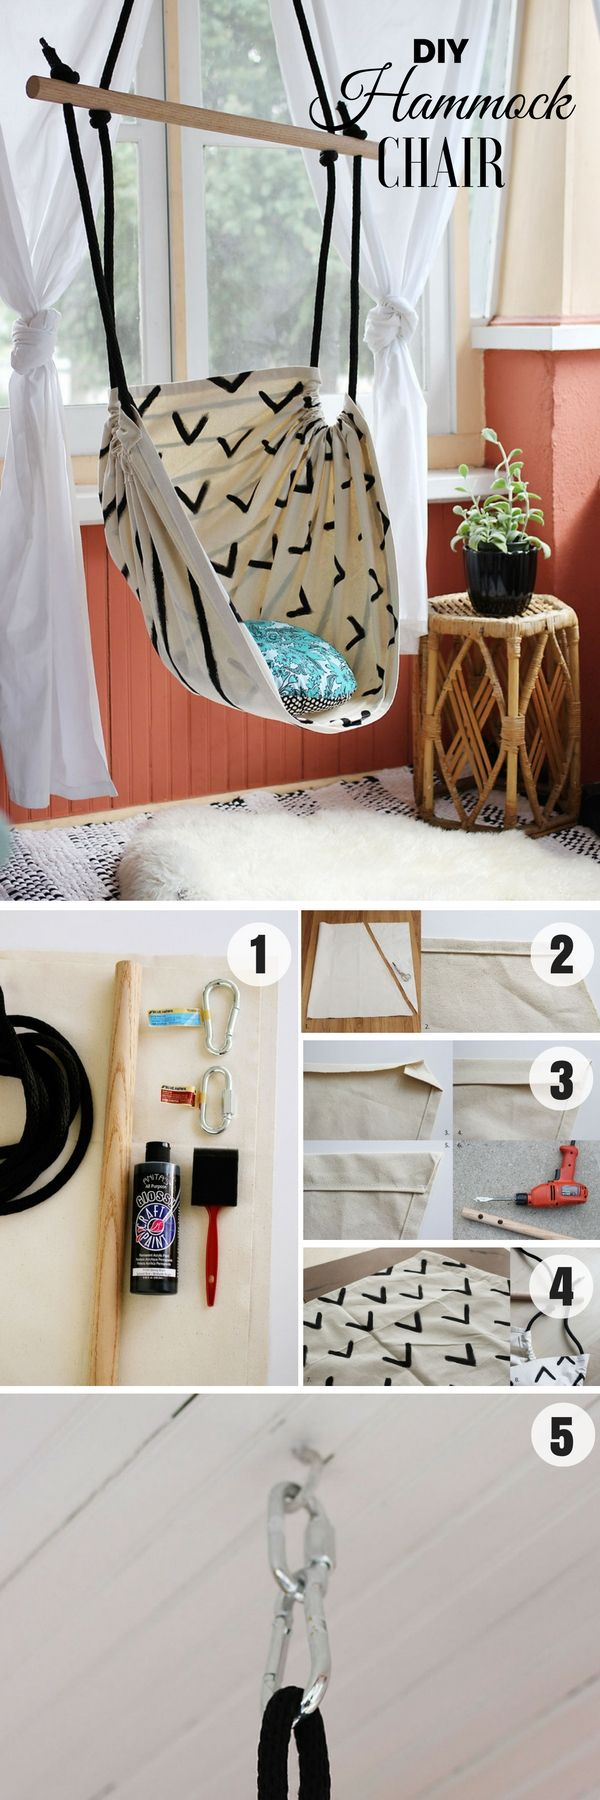 Simple Bedroom Design Ideas best 25+ diy room ideas ideas only on pinterest | diy room decor